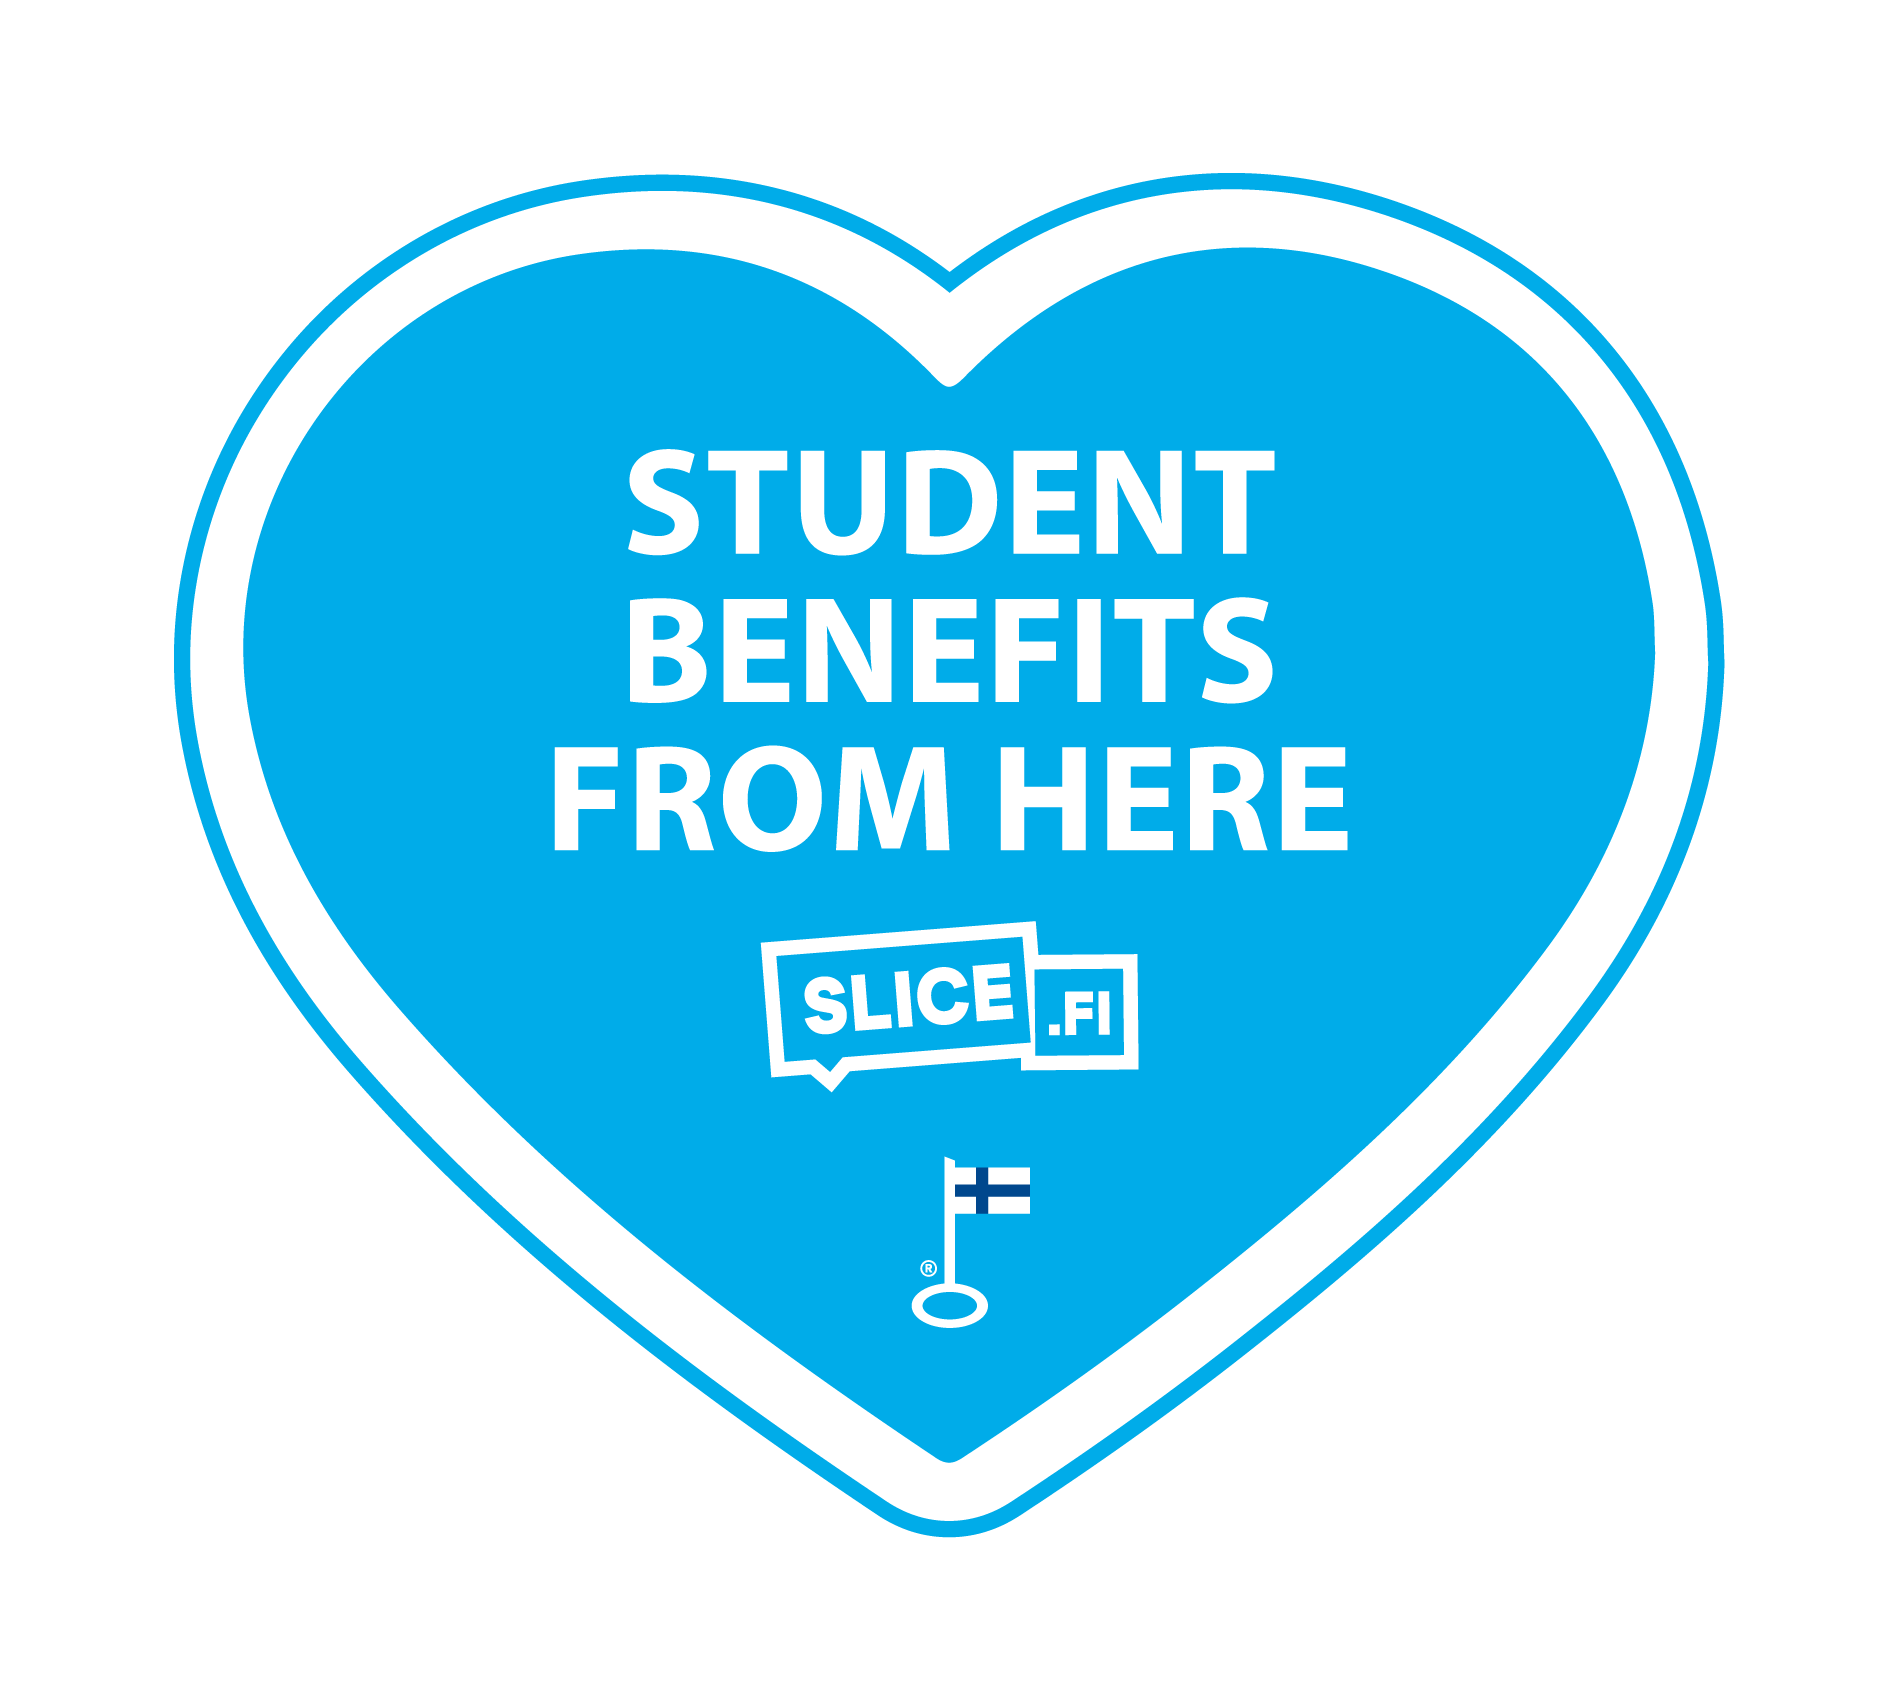 student benefits from here